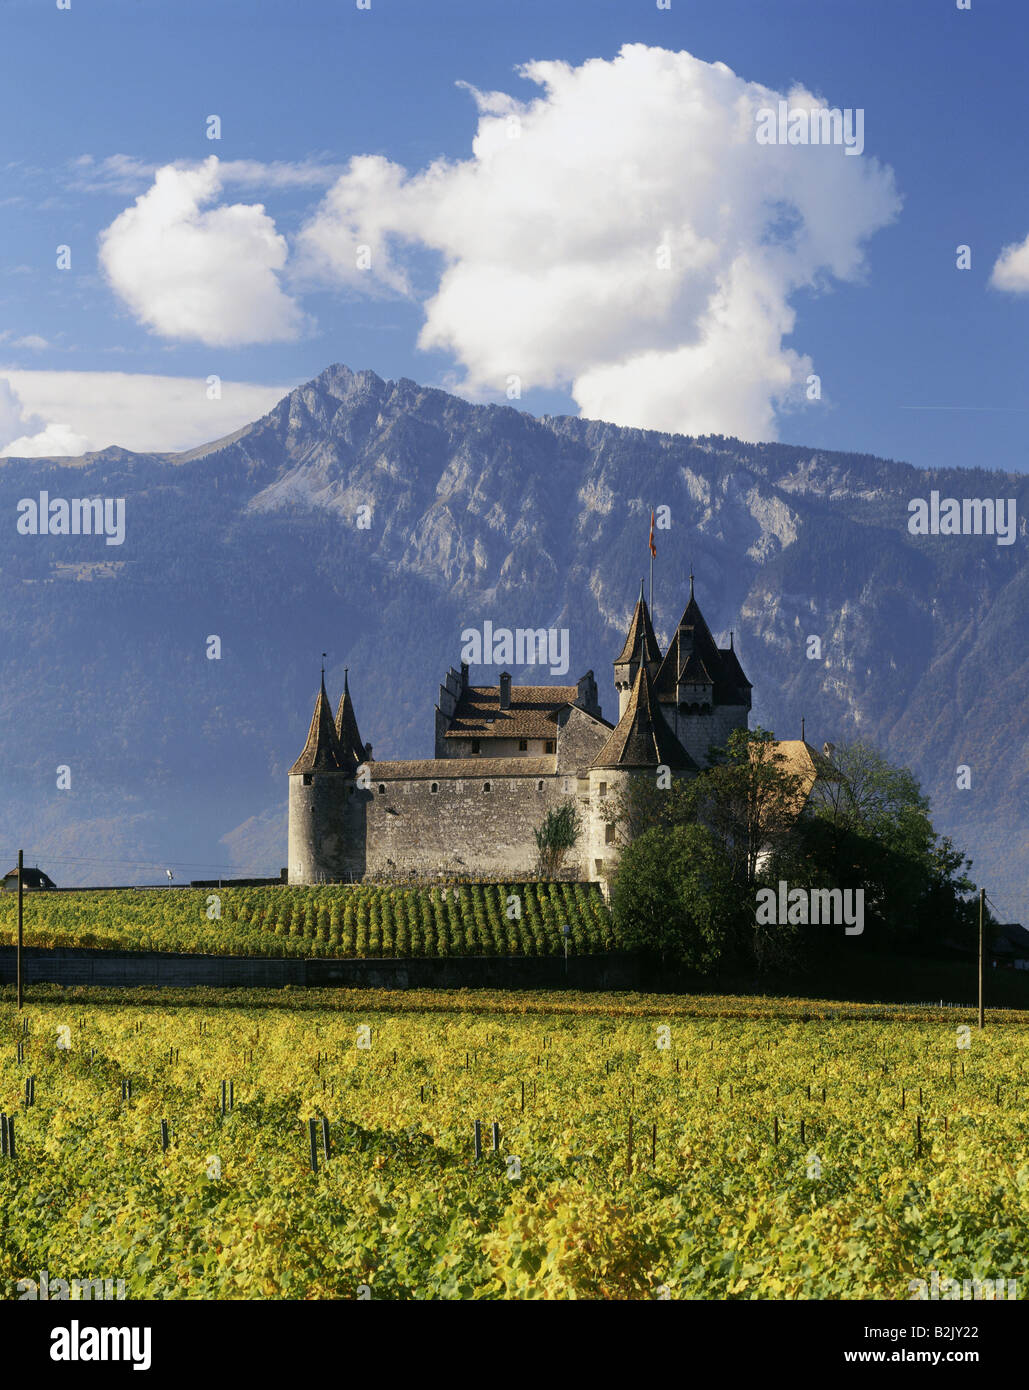 geography / travel, Switzerland, Vaud, Aigle, castles, Additional-Rights-Clearance-Info-Not-Available - Stock Image